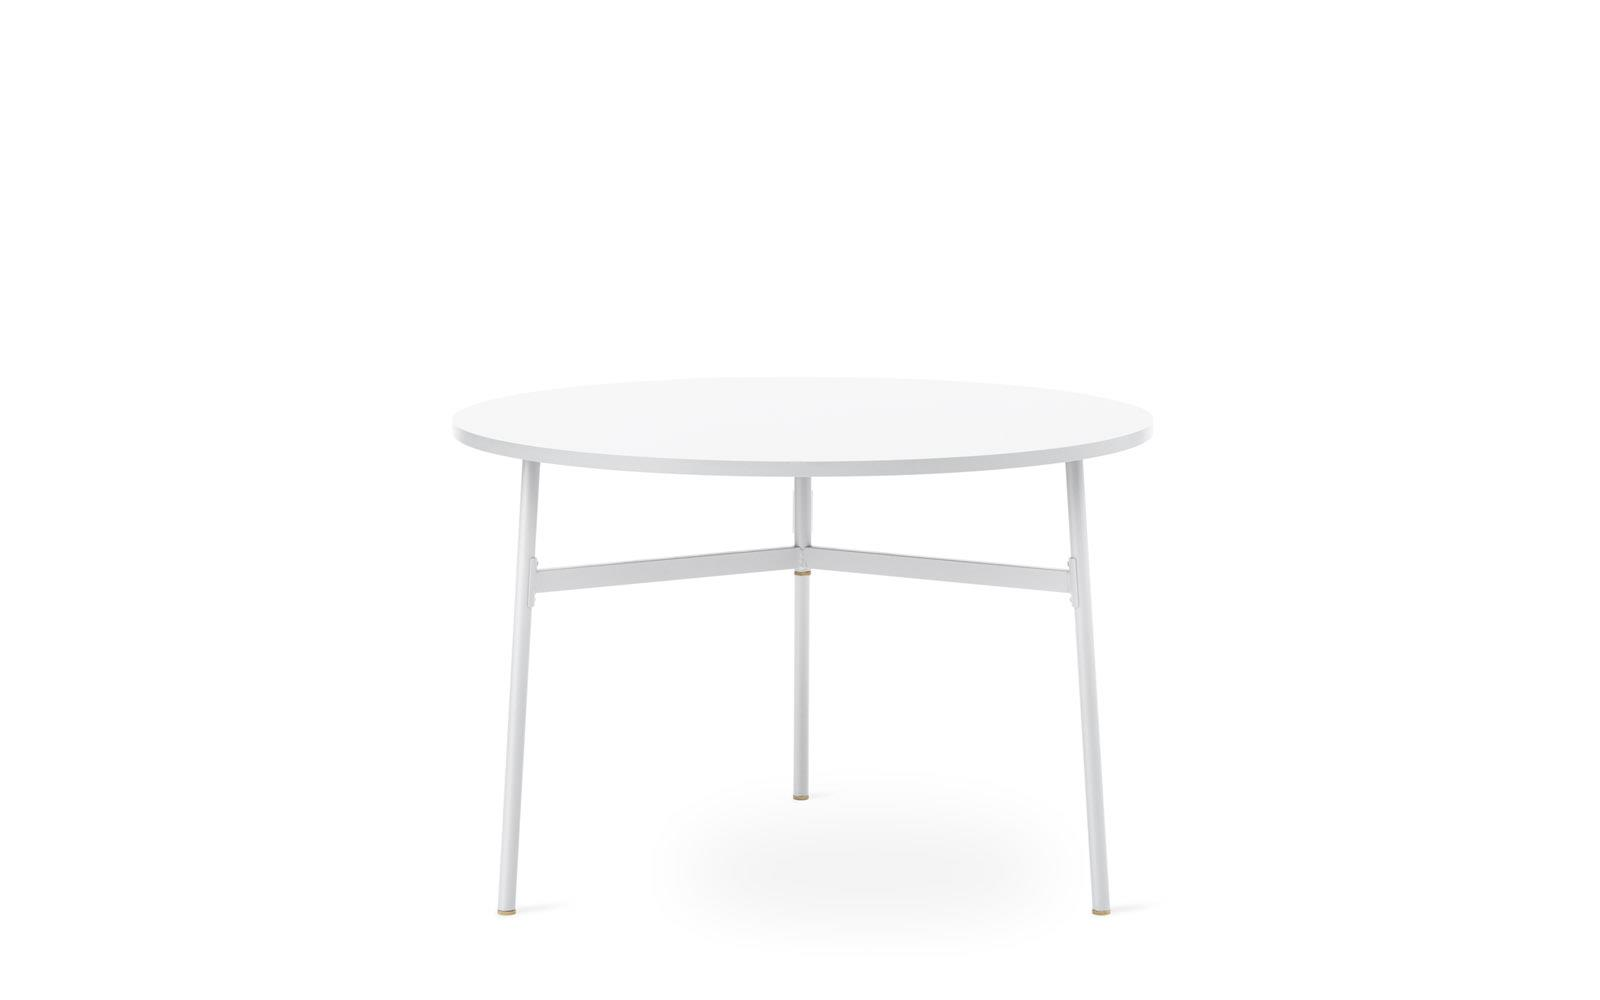 Union Table 110 x H745 cm2